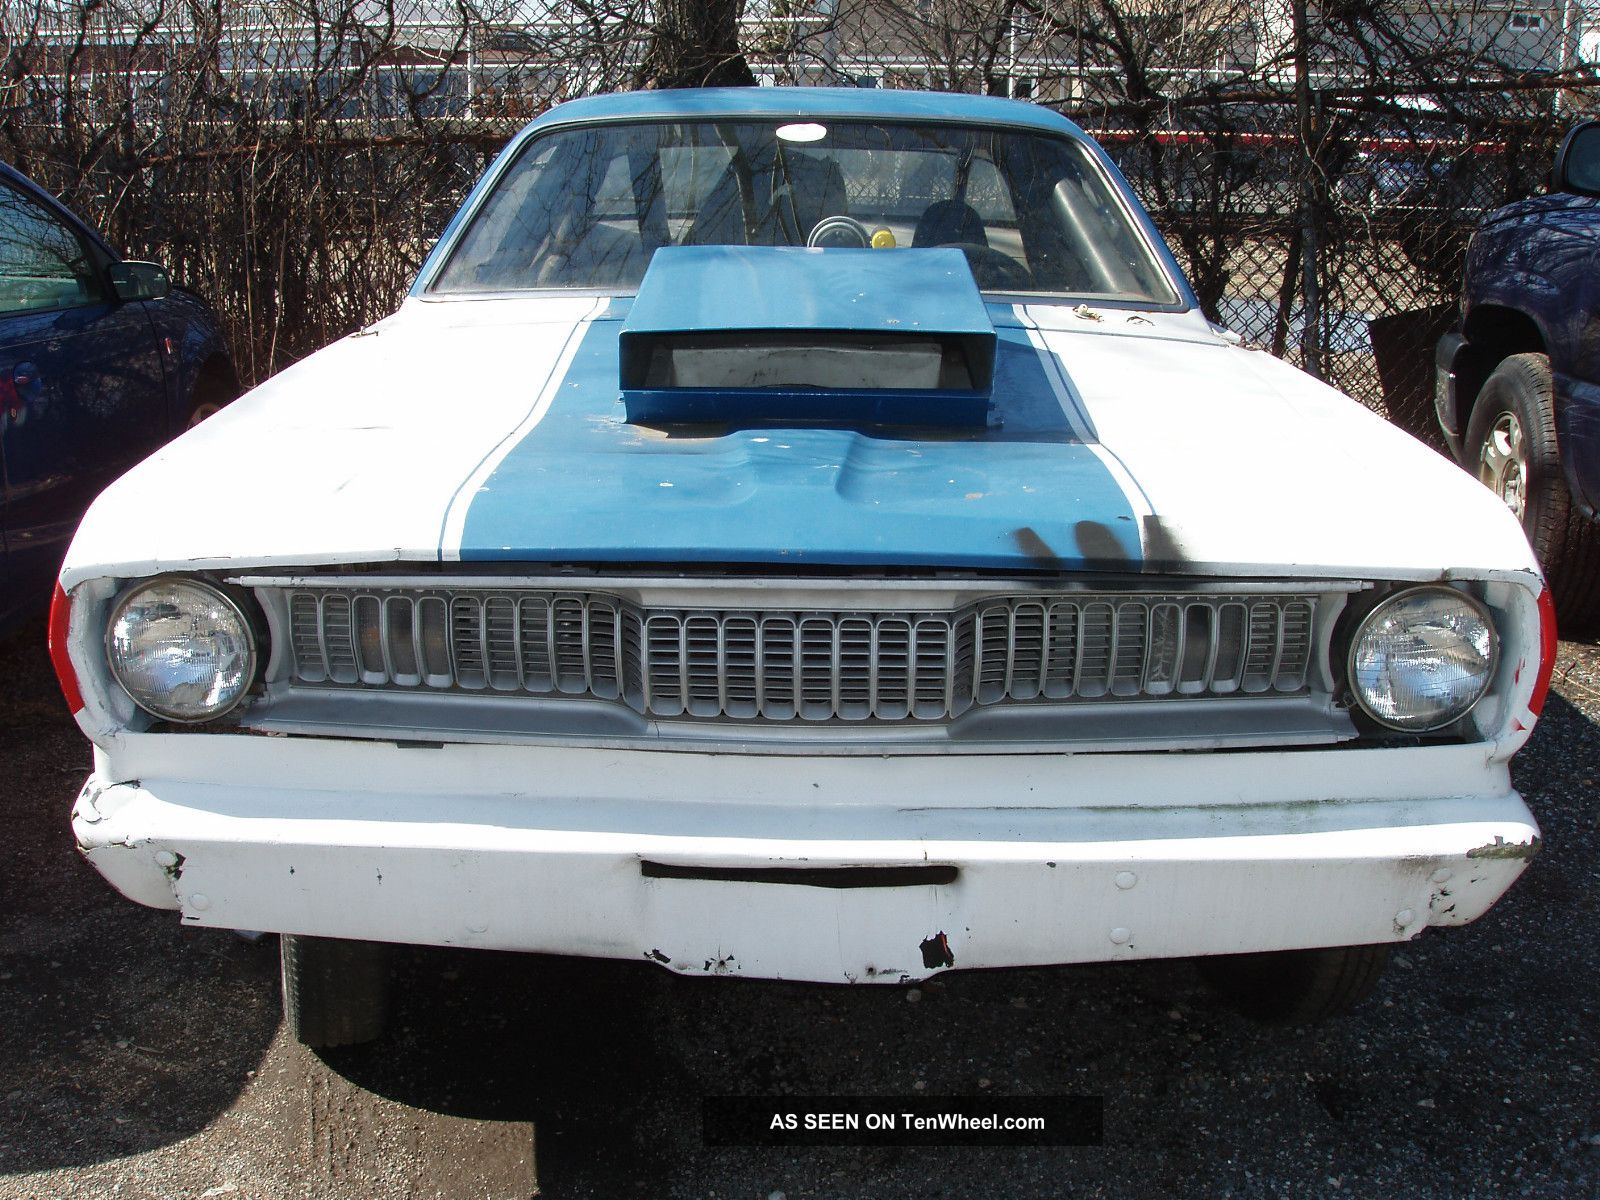 hight resolution of 1970 plymouth duster drag race car no engine or trans diagram further 1970 plymouth duster race car furthermore old buick